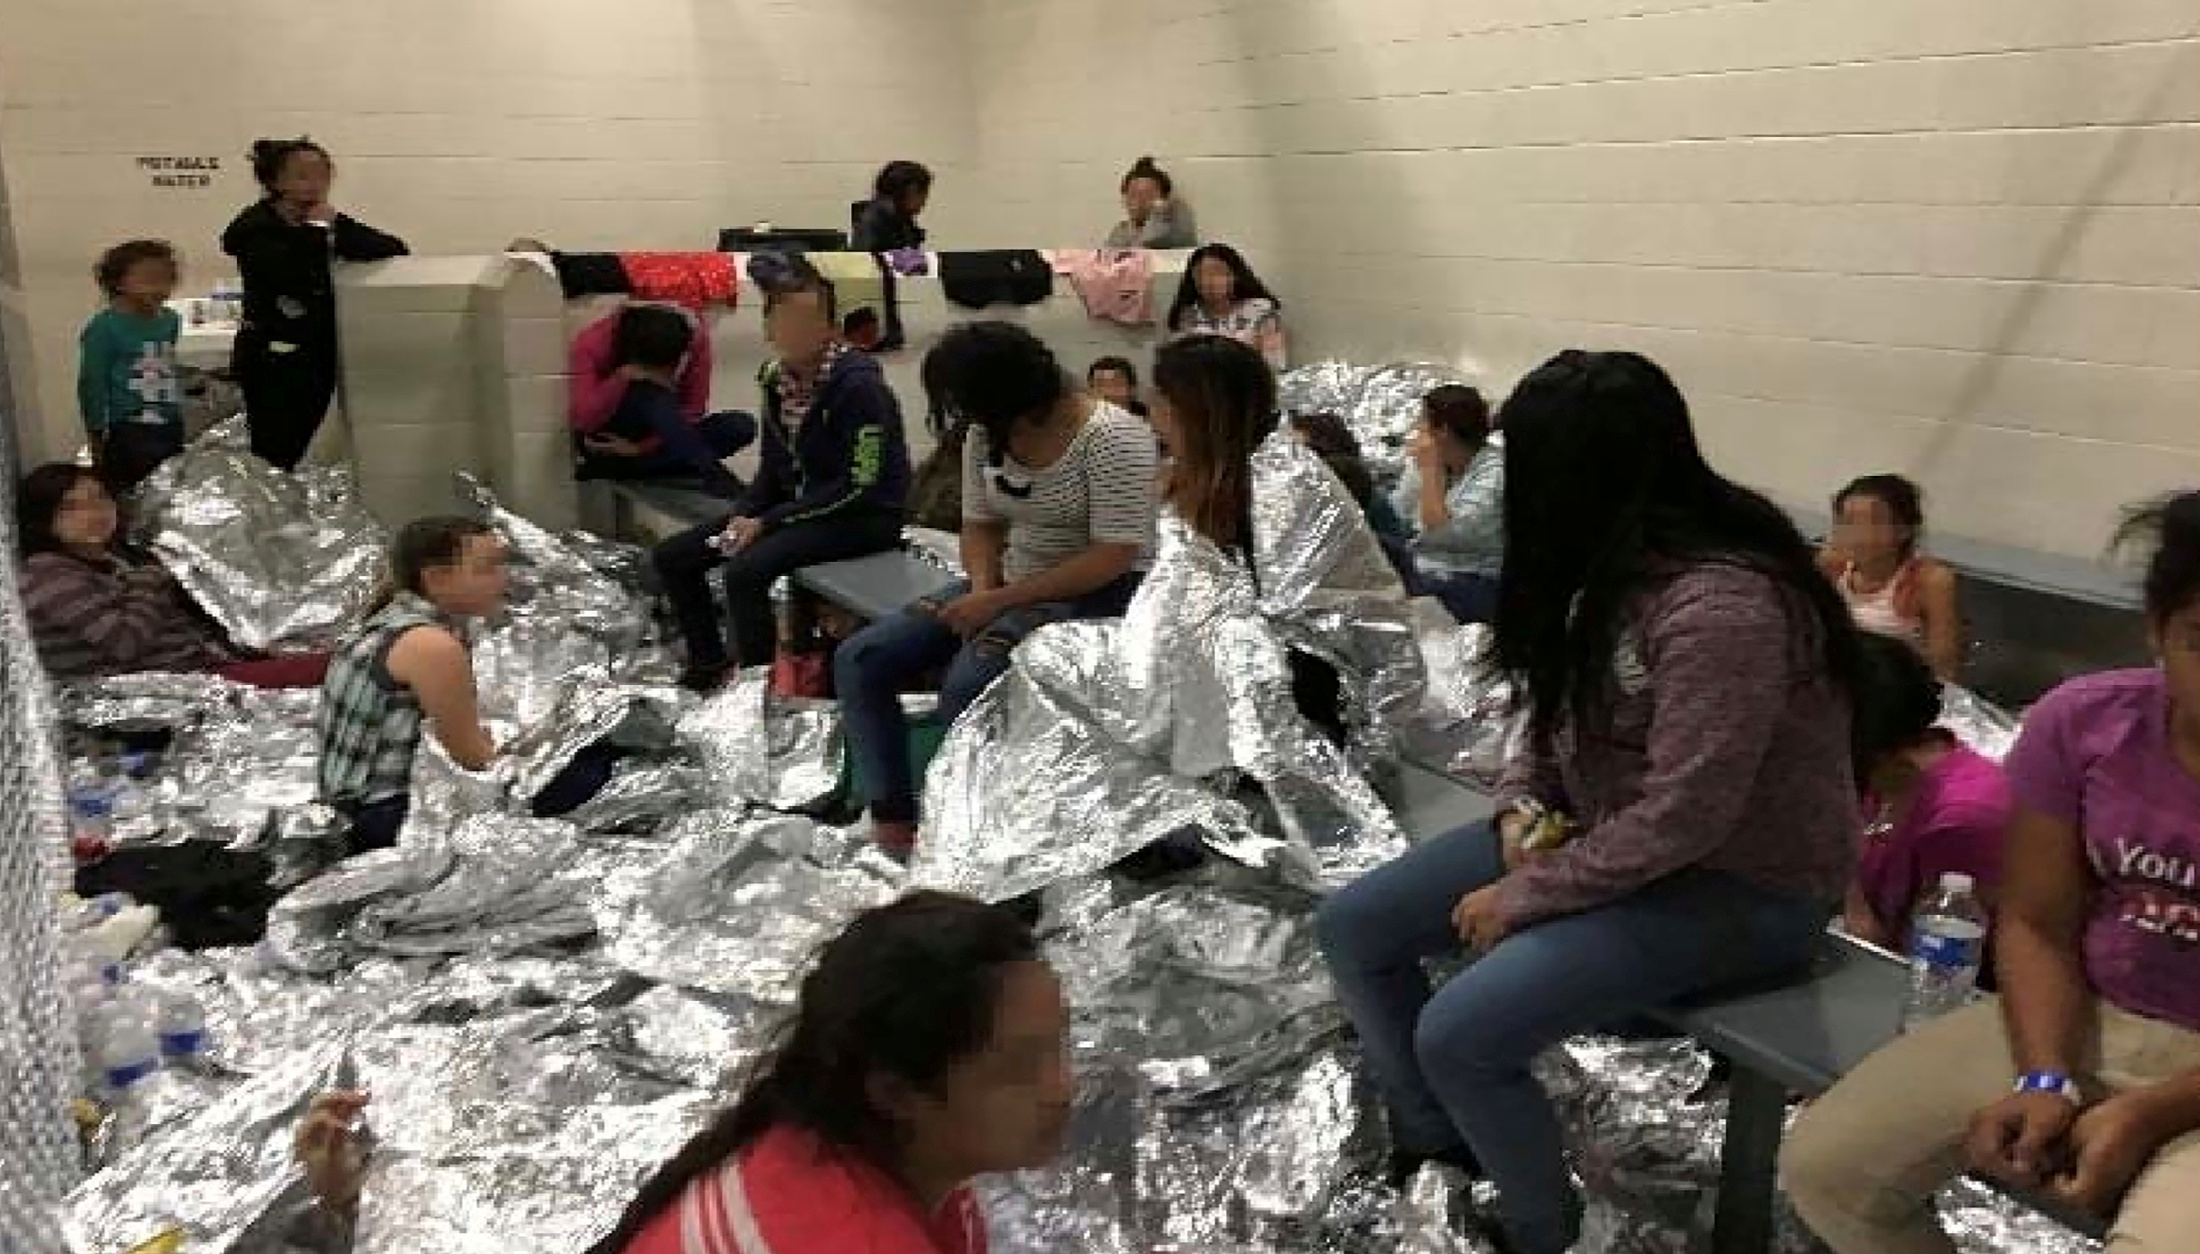 An overcrowded area holding families at a Border Patrol Centralized Processing Center is seen in a still image from video in McAllen, Texas, U.S. on June 11, 2019 and released as part of a report by the Department of Homeland Security's Office of Inspector General on July 2, 2019. Picture pixelated at source. Office of Inspector General/DHS/Handout via REUTERS